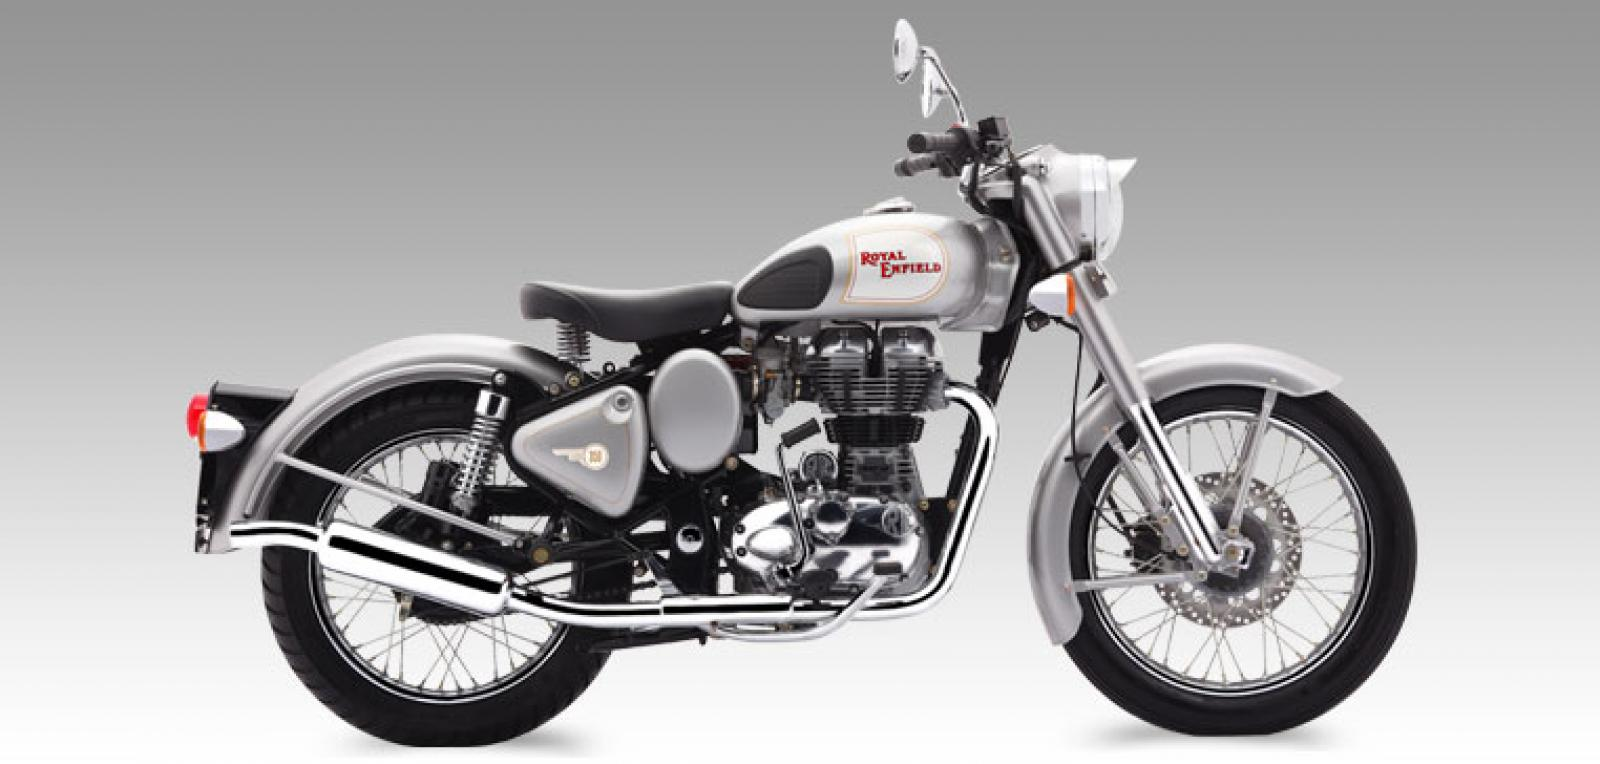 2004 Enfield US Classic 350 #1